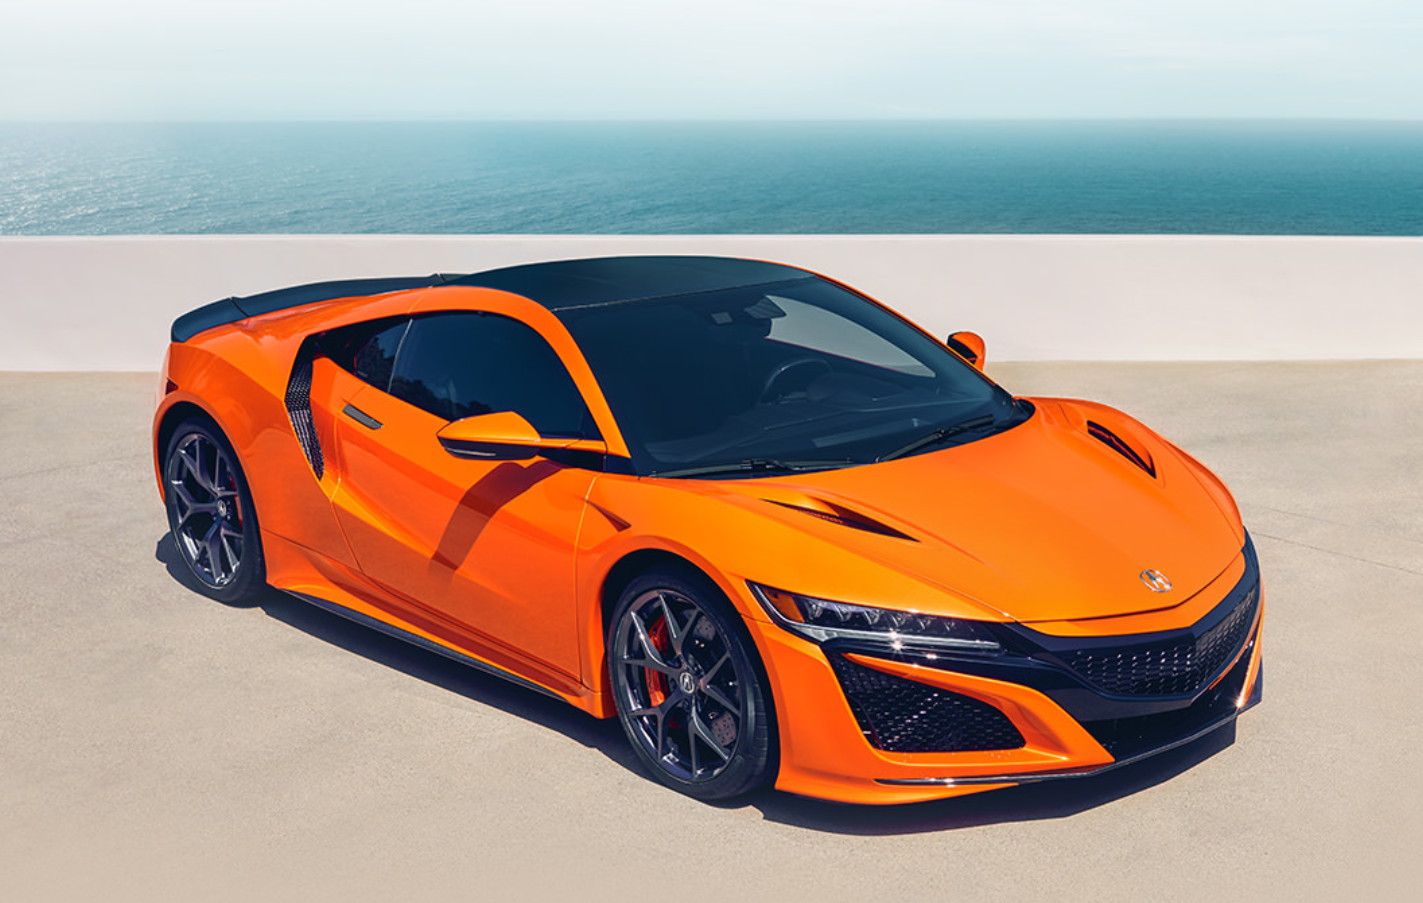 2019 Acura Nsx Engine Design Release Date For All The Technology It Needs To Provide 157 000 Is Not All That Much Dollars F Mobil Sport Mobil Mobil Mewah